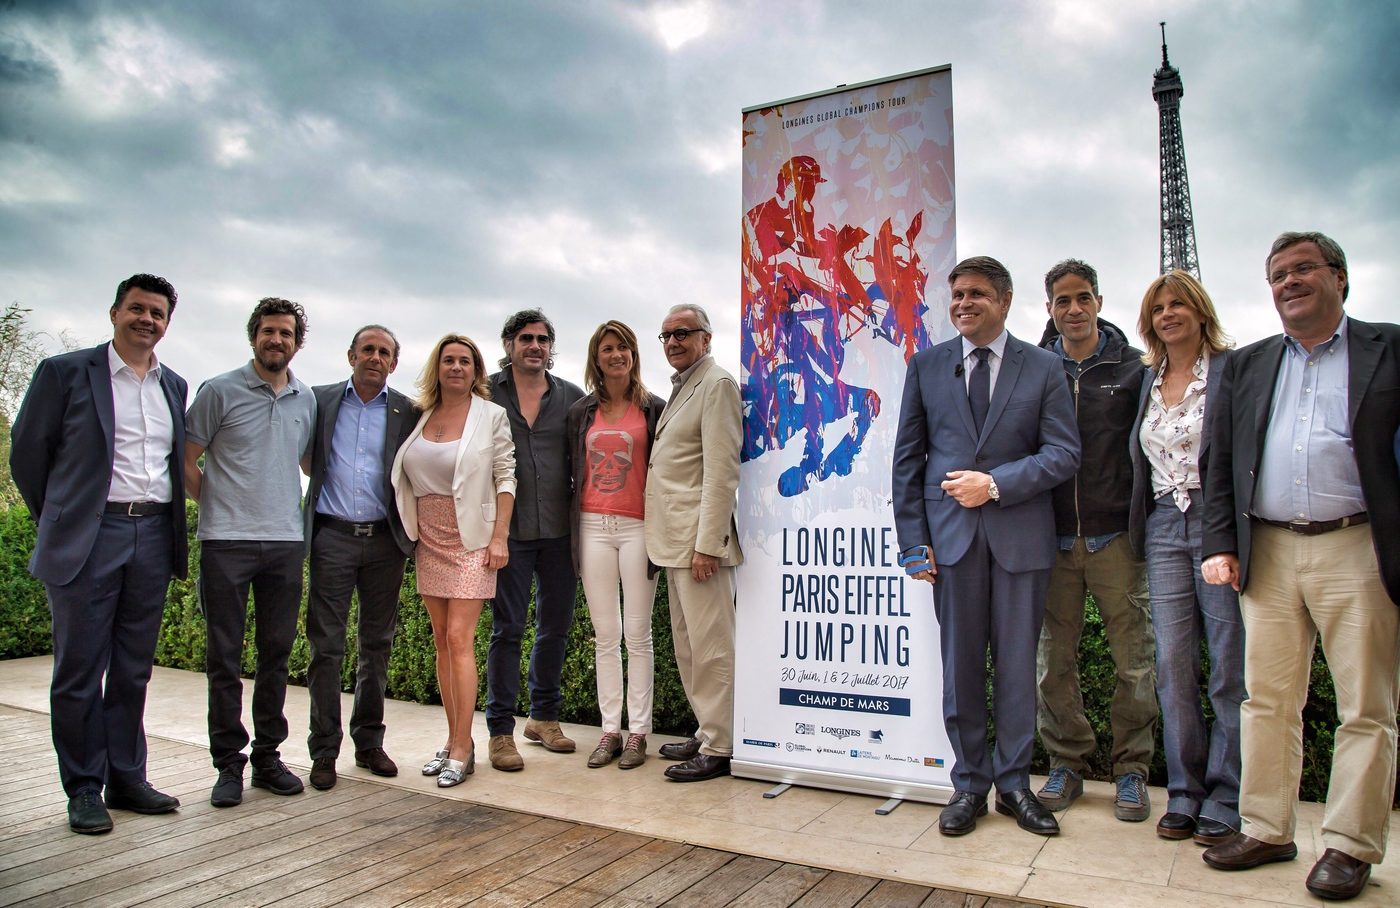 Longines Show Jumping Event: The Longines Paris Eiffel Jumping returns to its iconic location in the very heart of the French capital 3